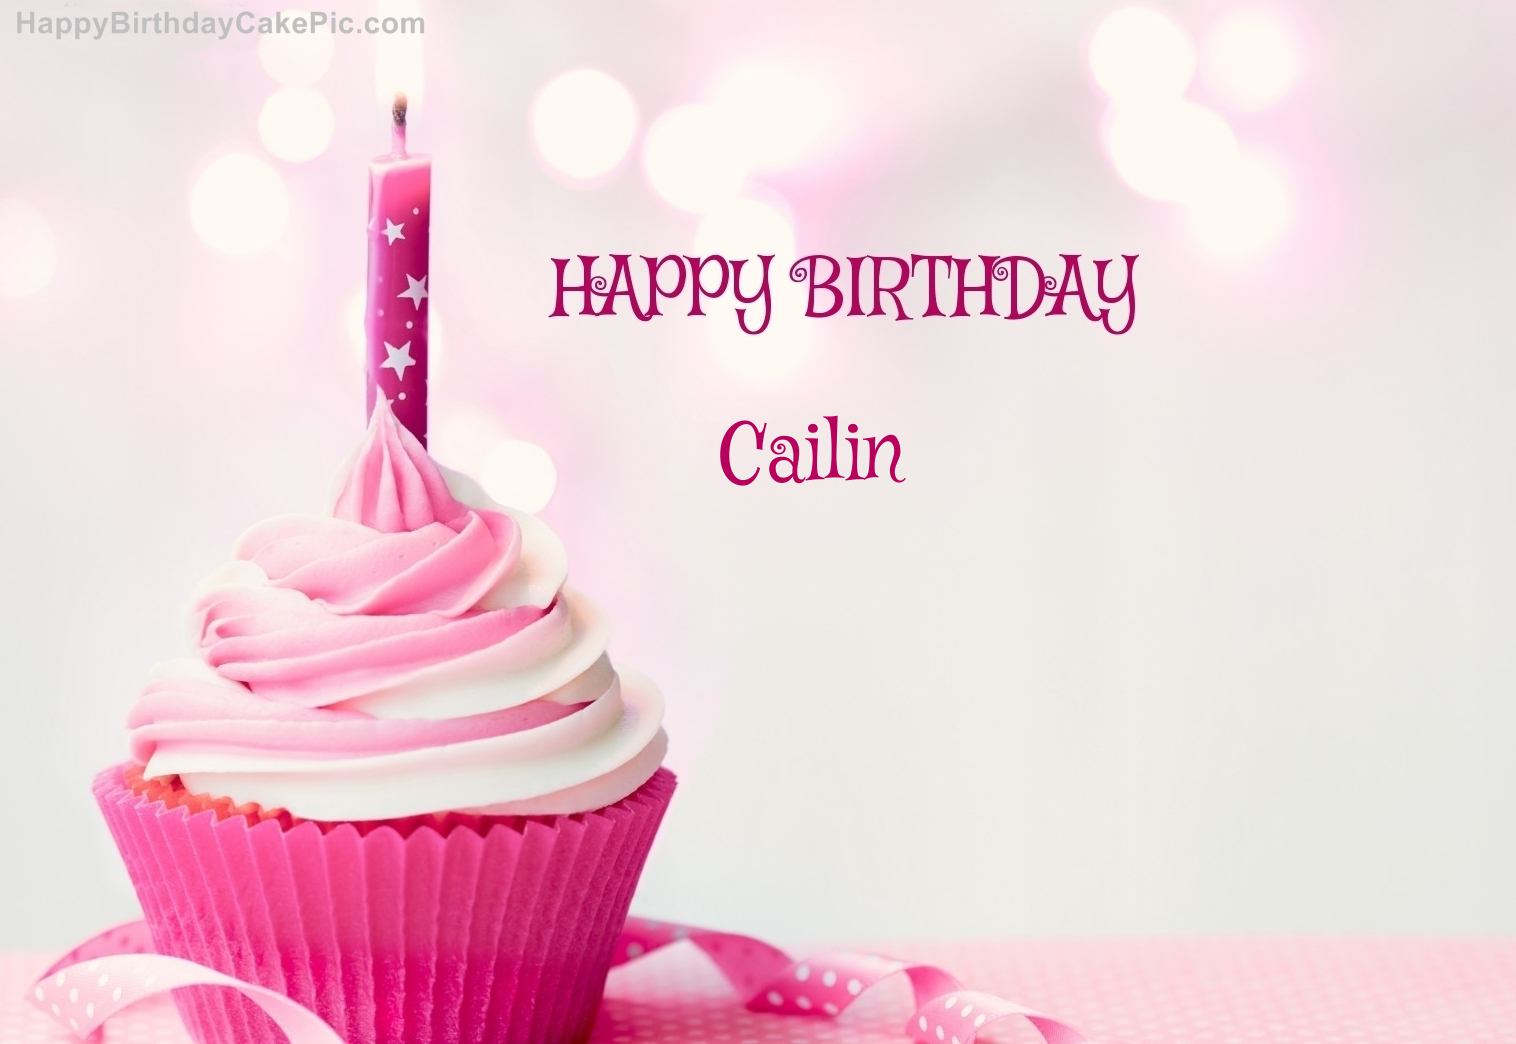 Happy Birthday Cupcake Candle Pink Cake For Cailin: happybirthdaycakepic.com/Cailin/7/happy-birthday-cupcake-candle...